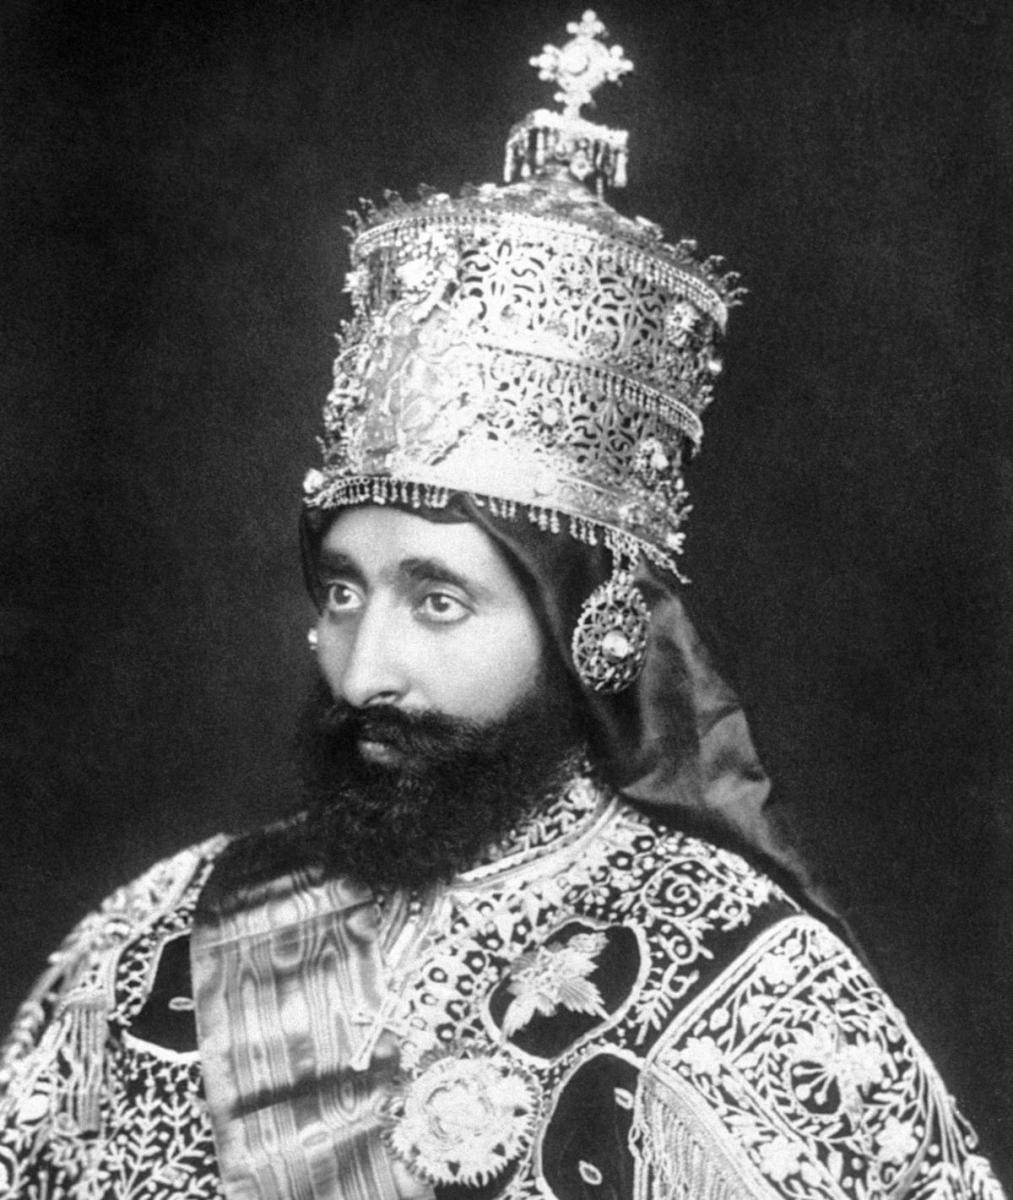 Emperor Ras Tafari. (Credit: Bettmann Archive/Getty Images)